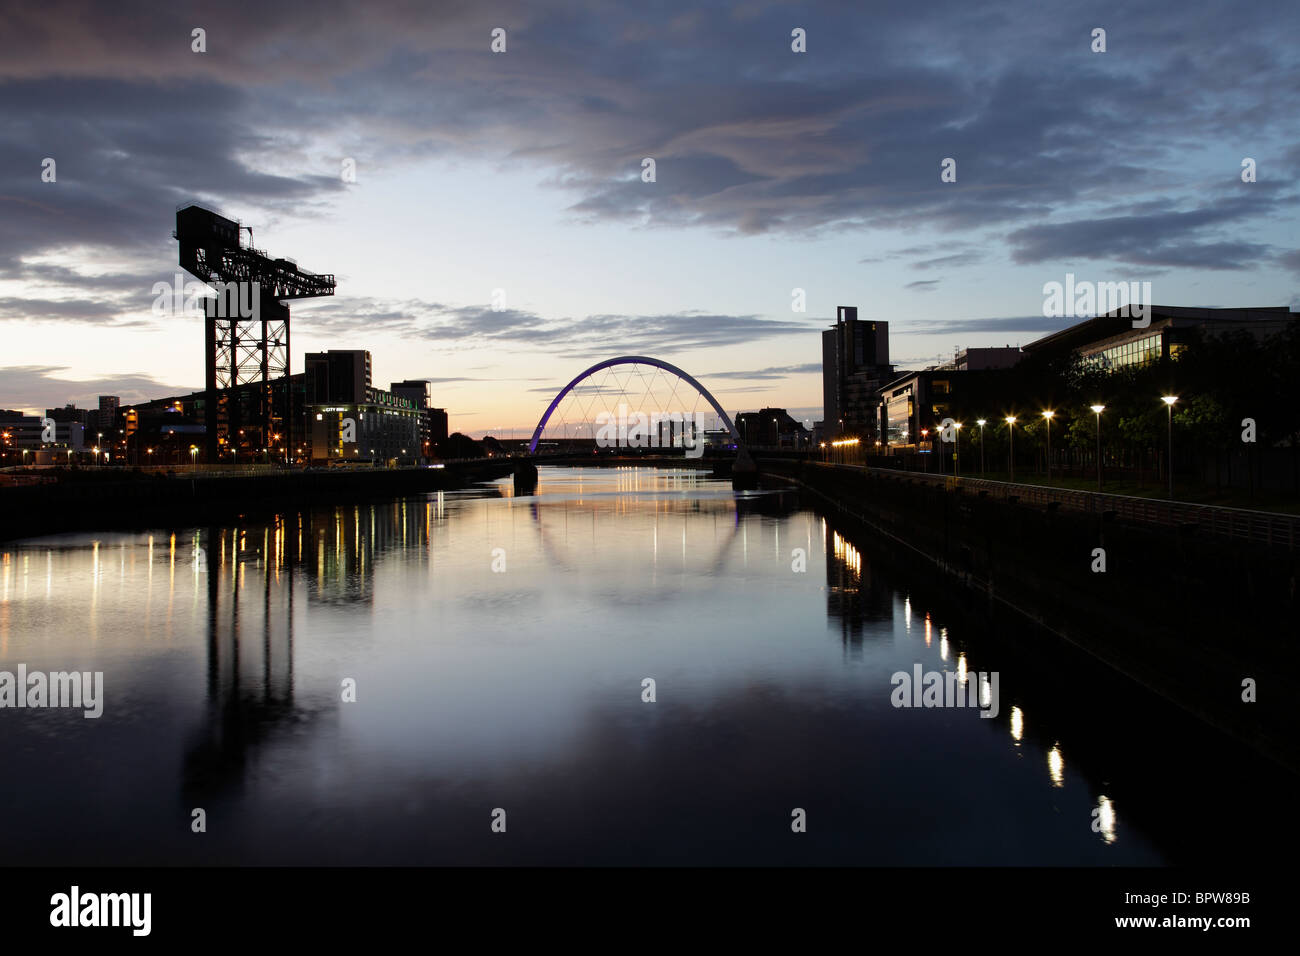 Looking East along the River Clyde at dawn towards the Clyde Arc Bridge and Finnieston Crane, Glasgow, Scotland - Stock Image